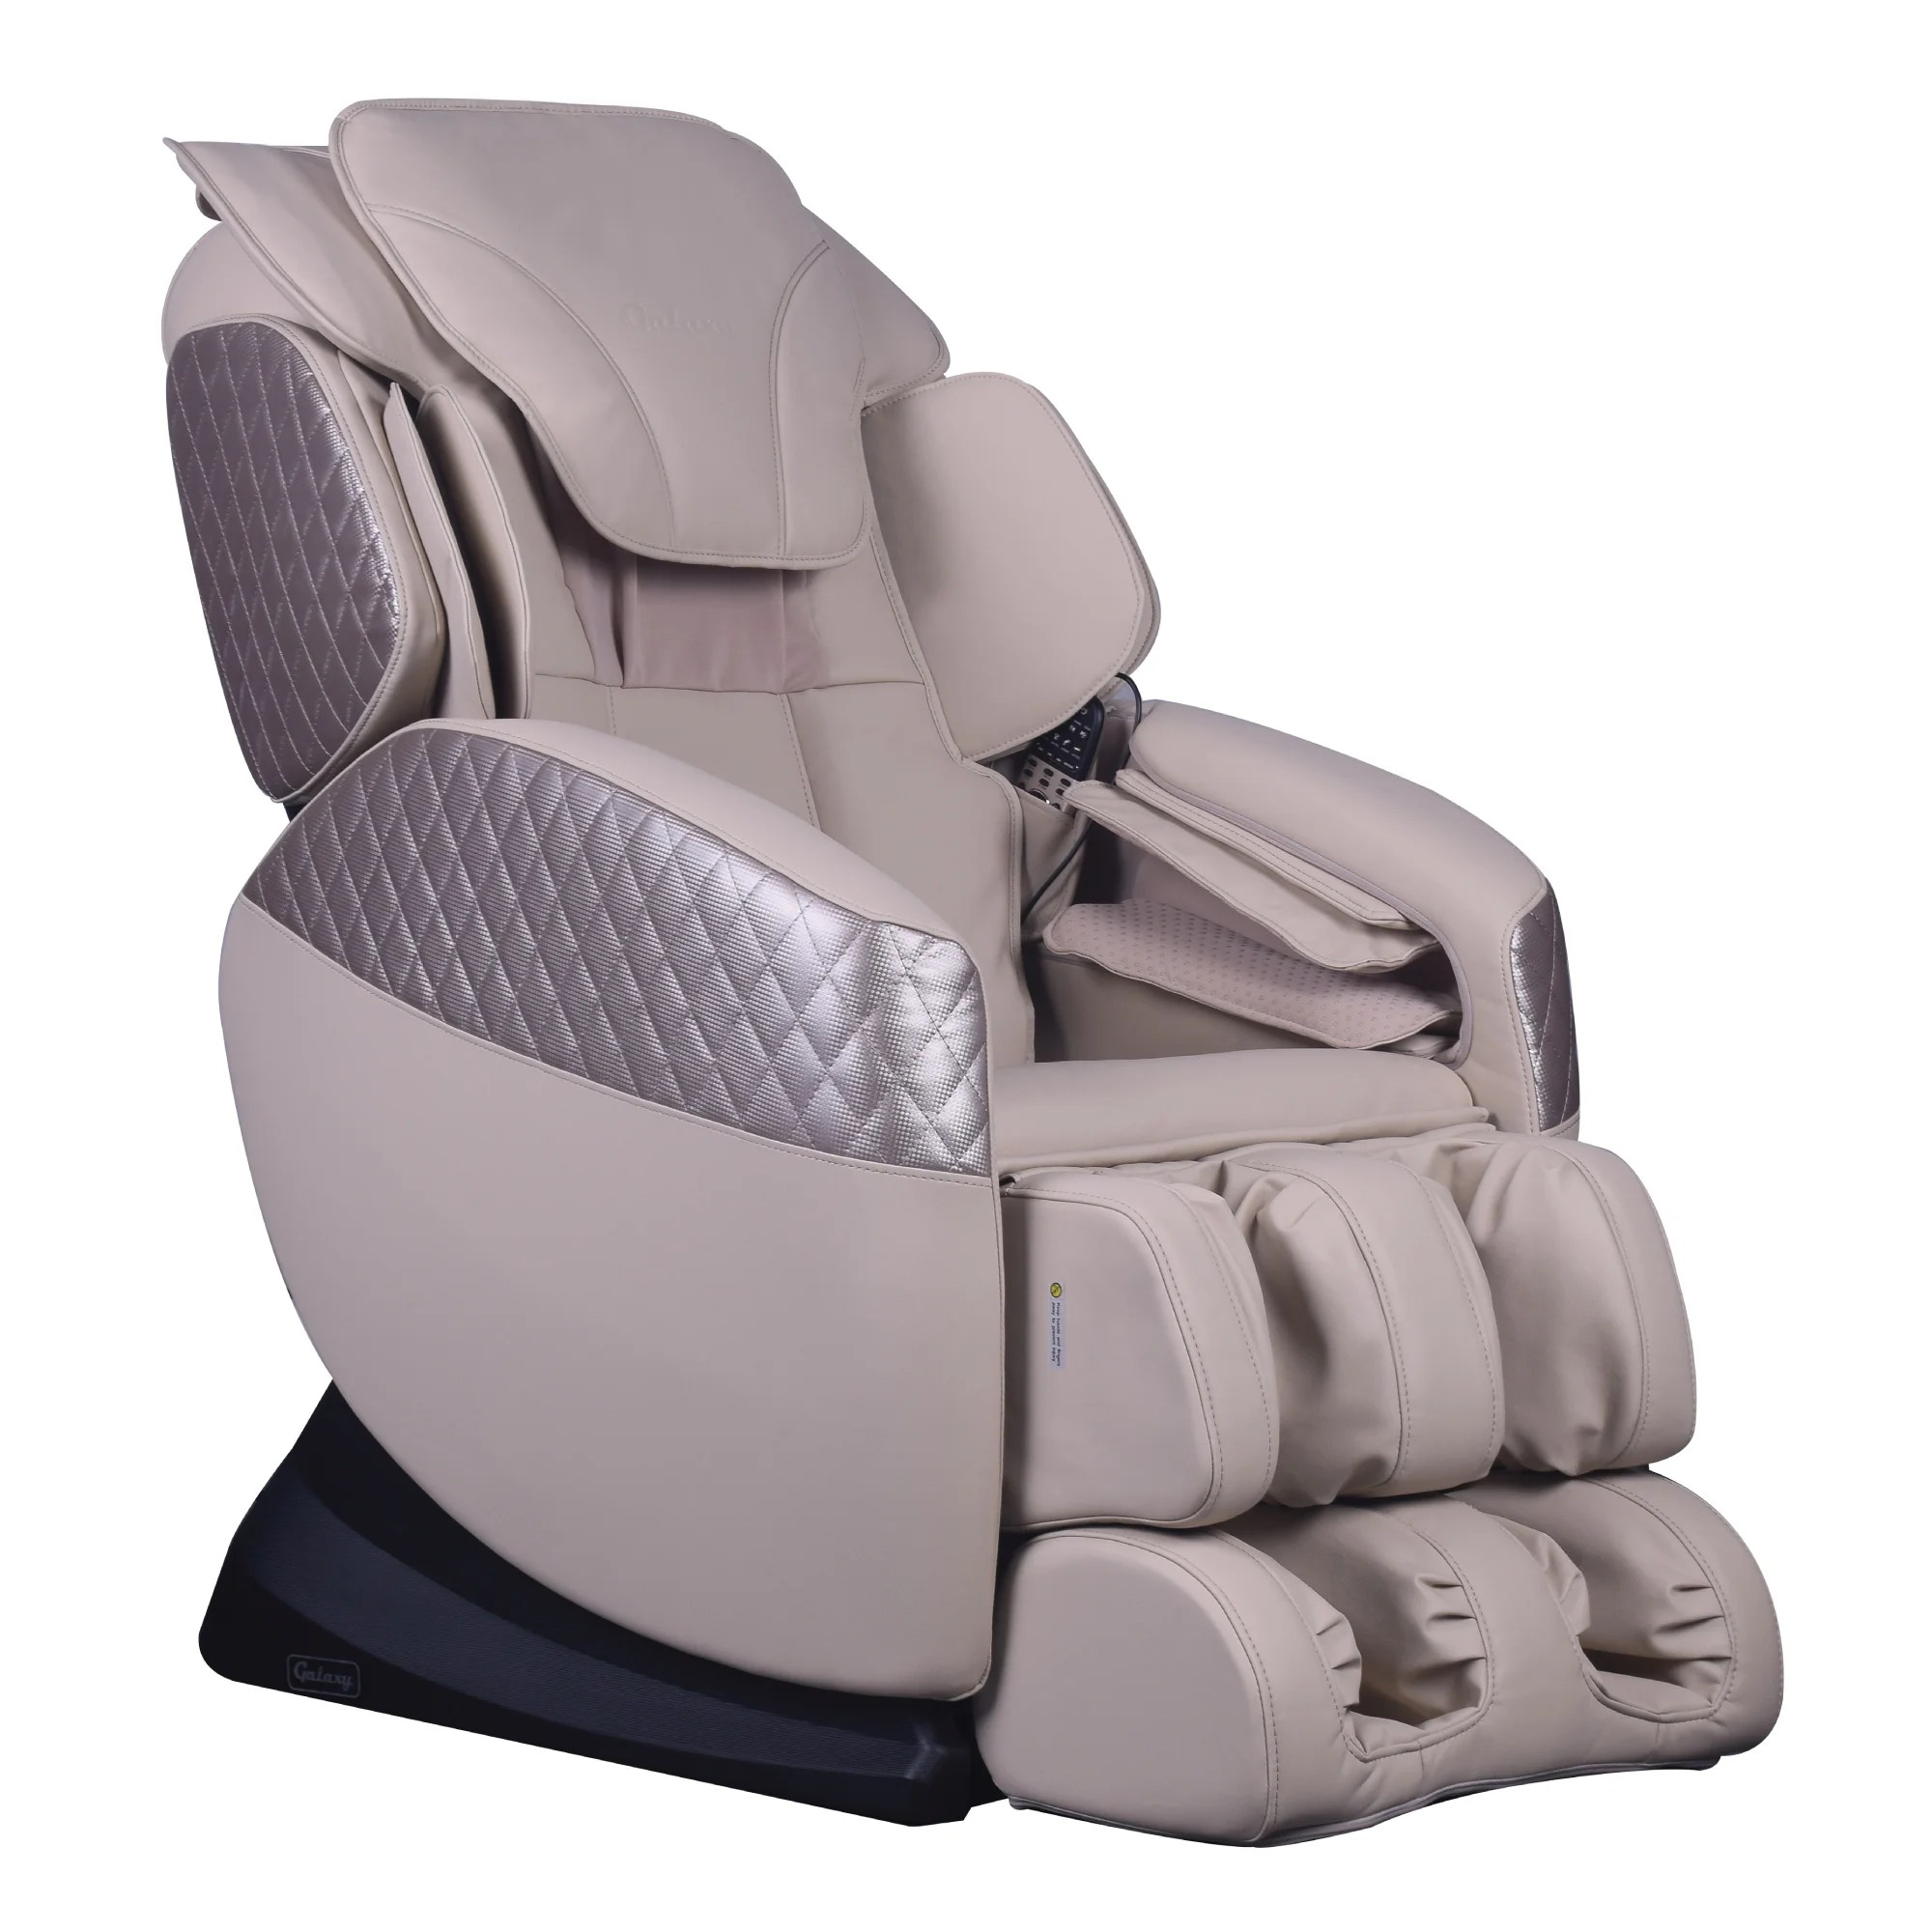 Massage Chair Cover Galaxy Ec 555 Longer S Track Full Body Massage Chair